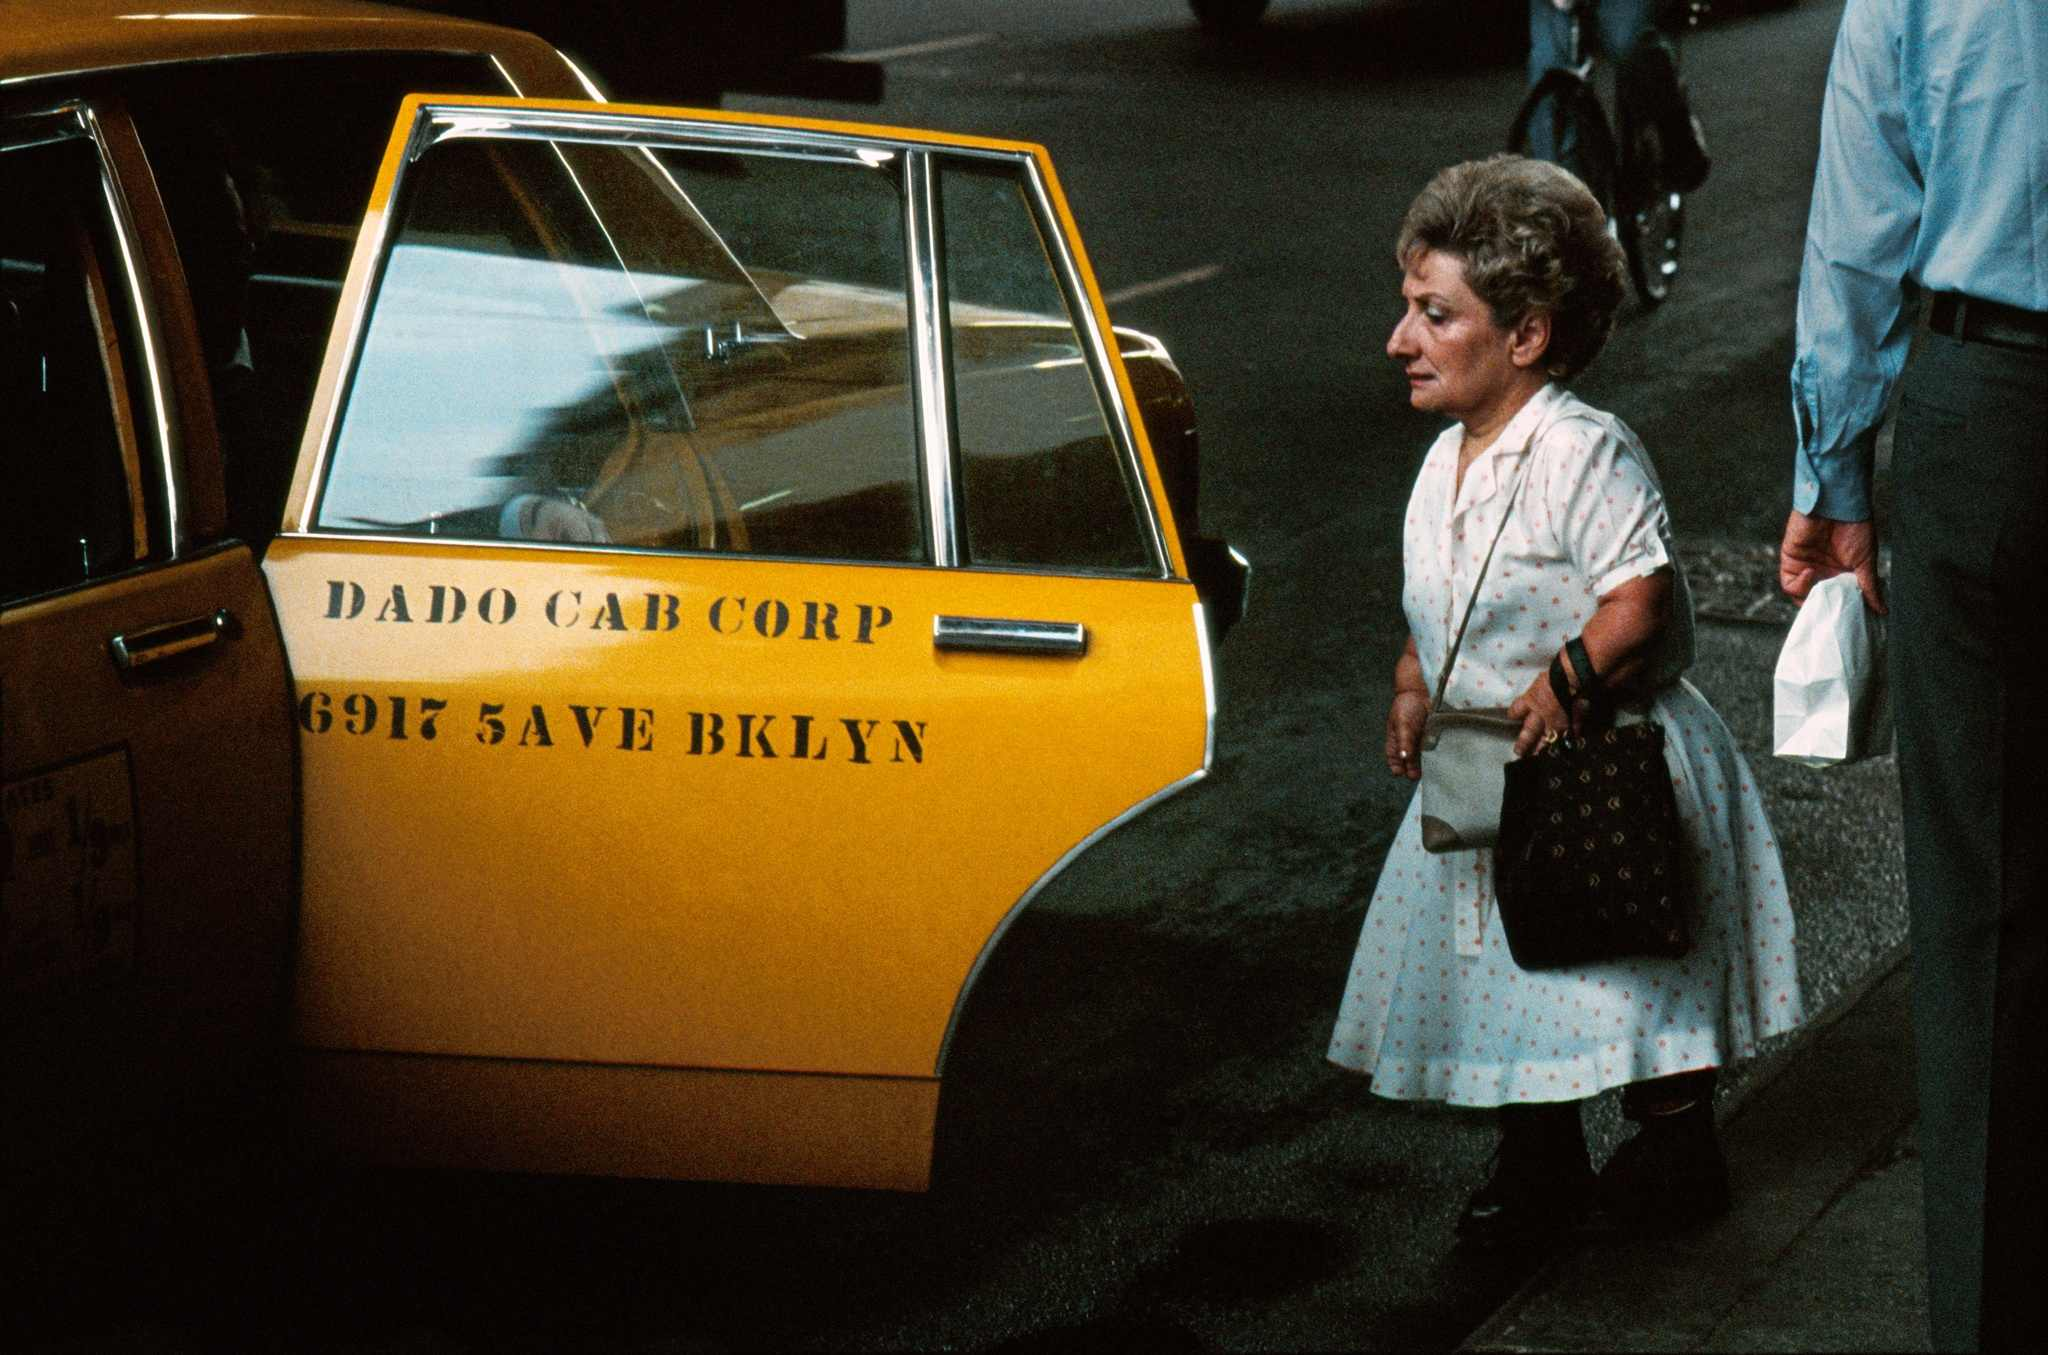 Taxi New York >> New York City Up And Down In The Early 1980s - Flashbak